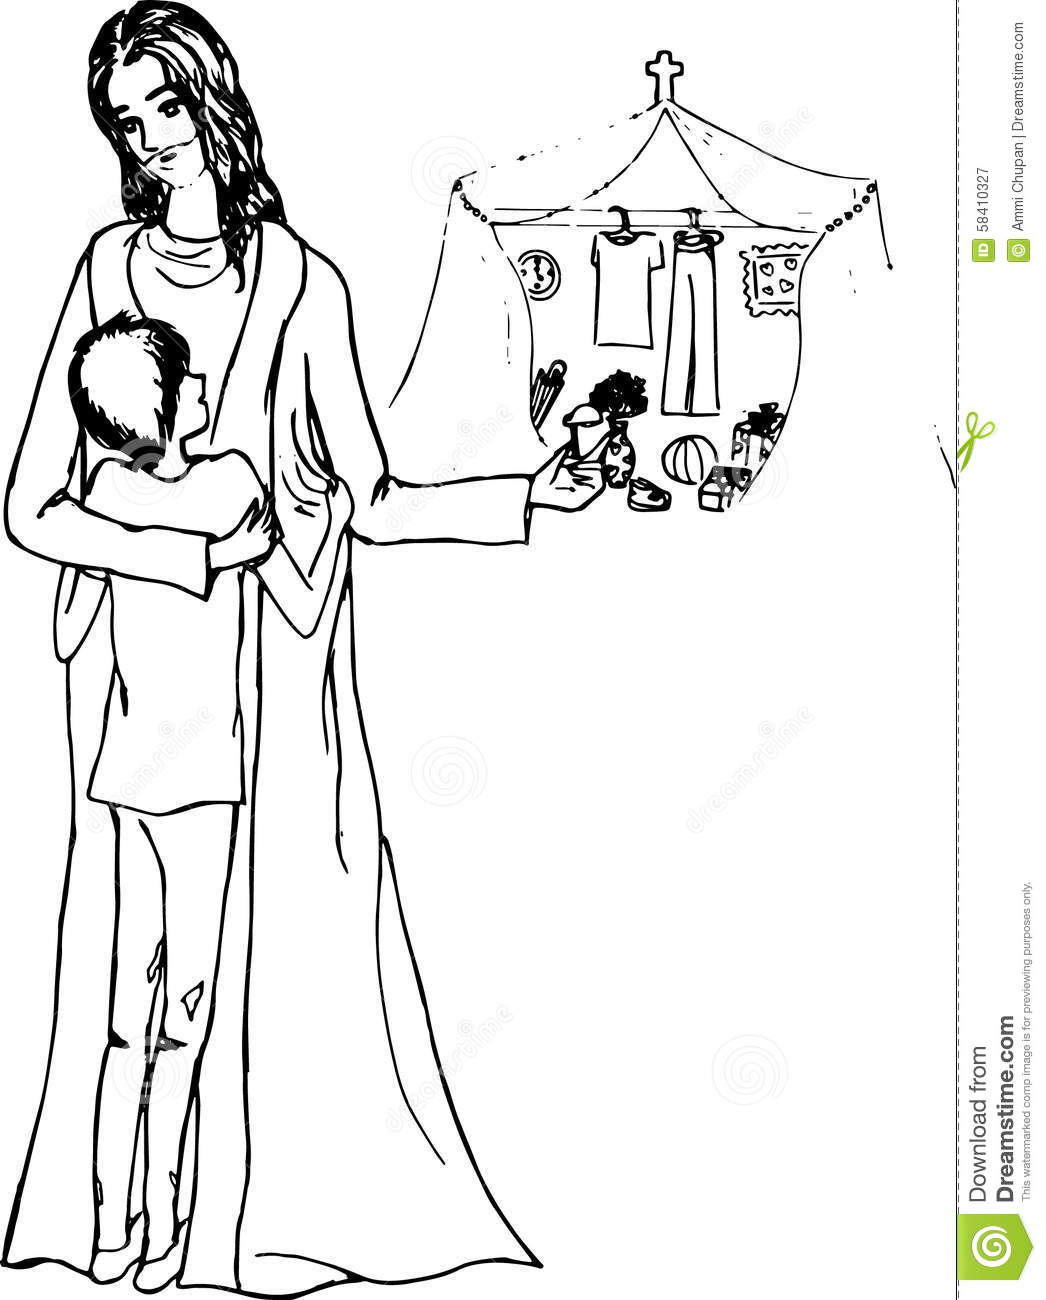 Drawing Of Jesus And Son Line Art Stock Illustration